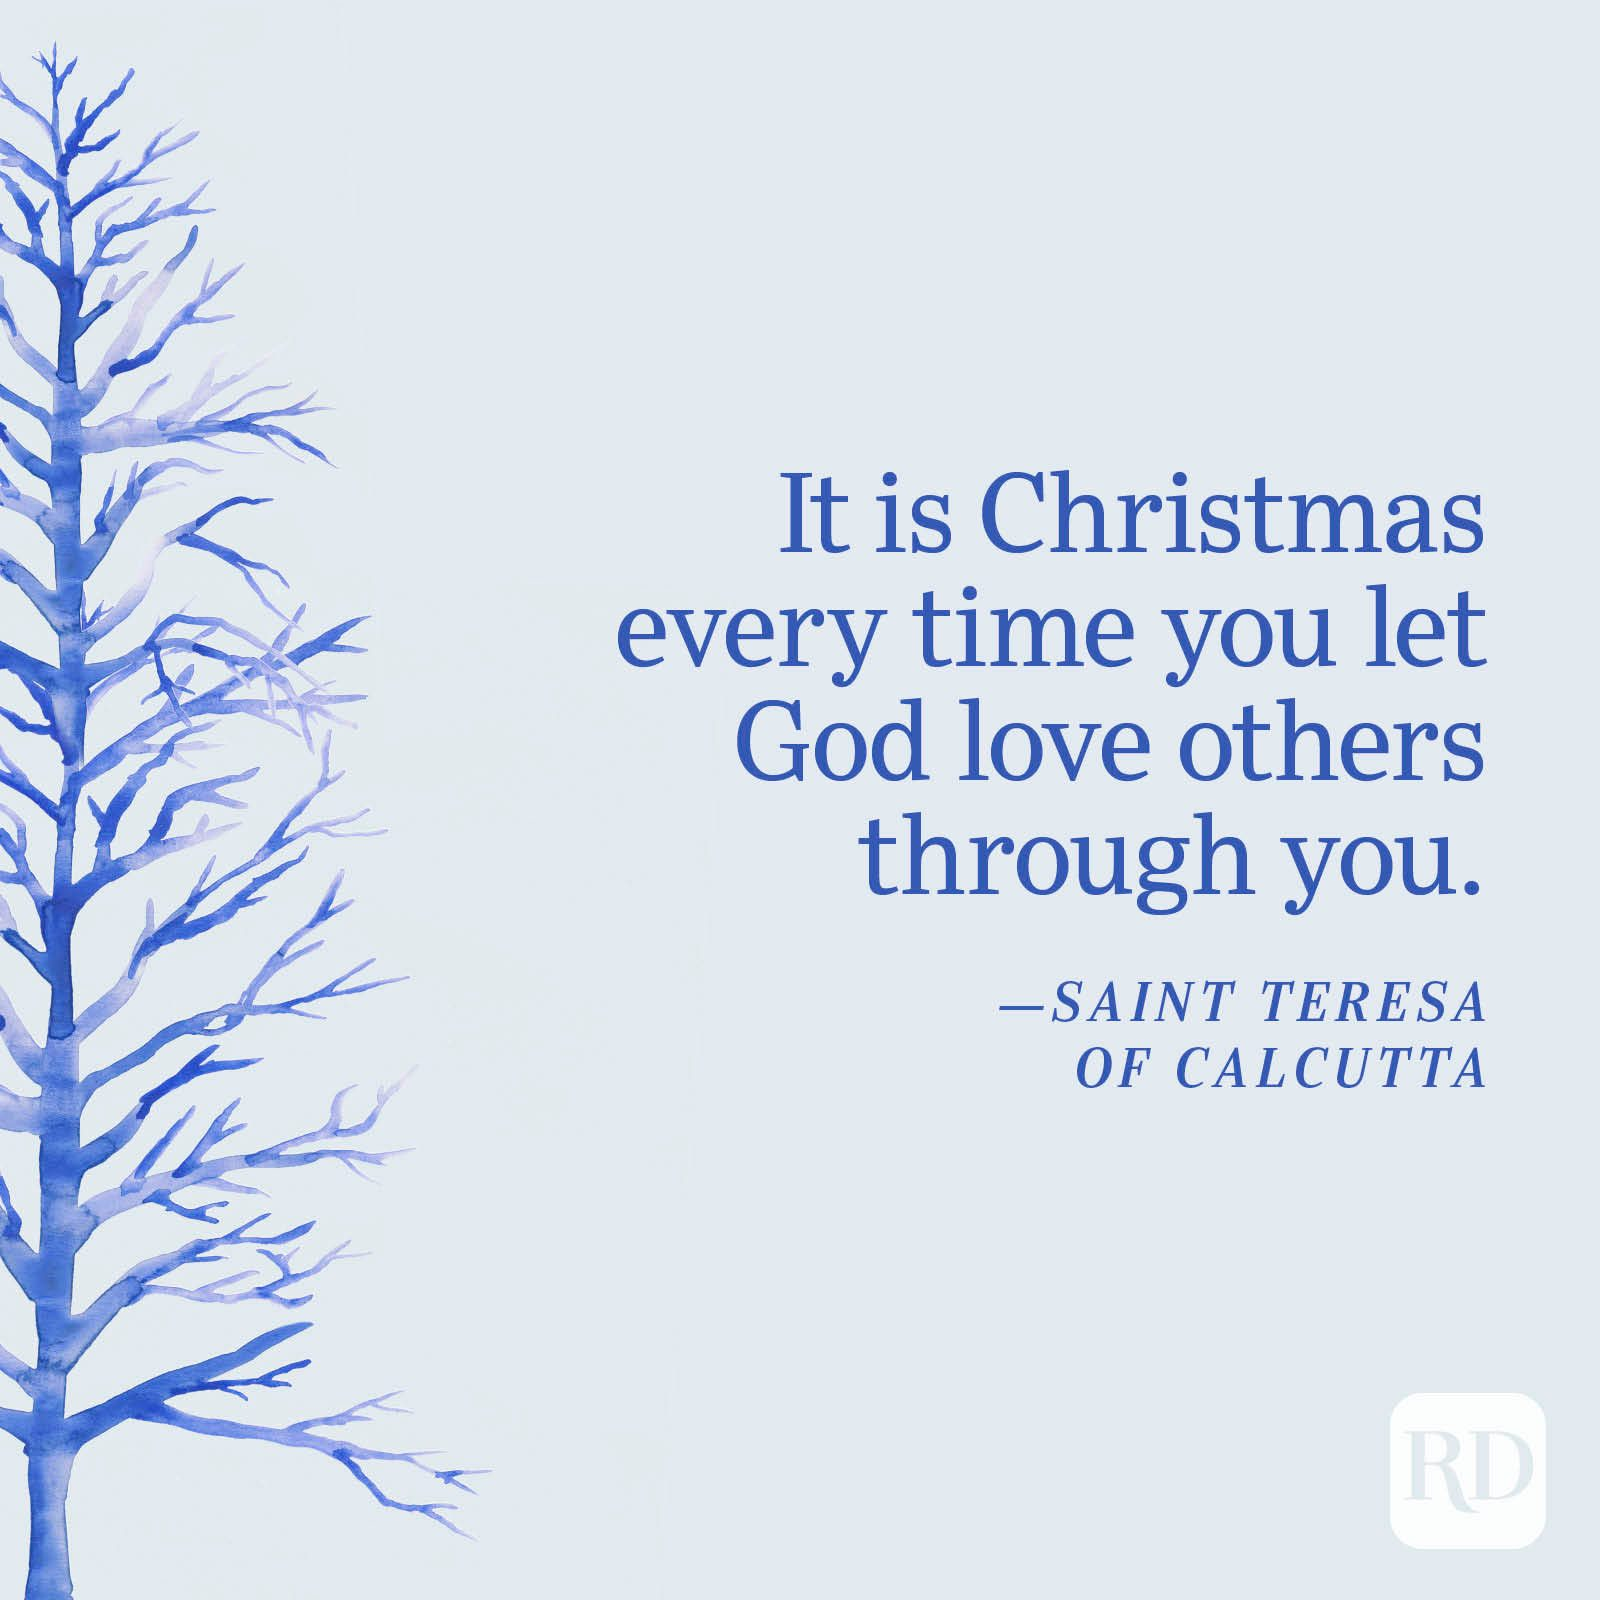 """""""It is Christmas every time you let God love others through you."""" —Saint Teresa of Calcutta"""